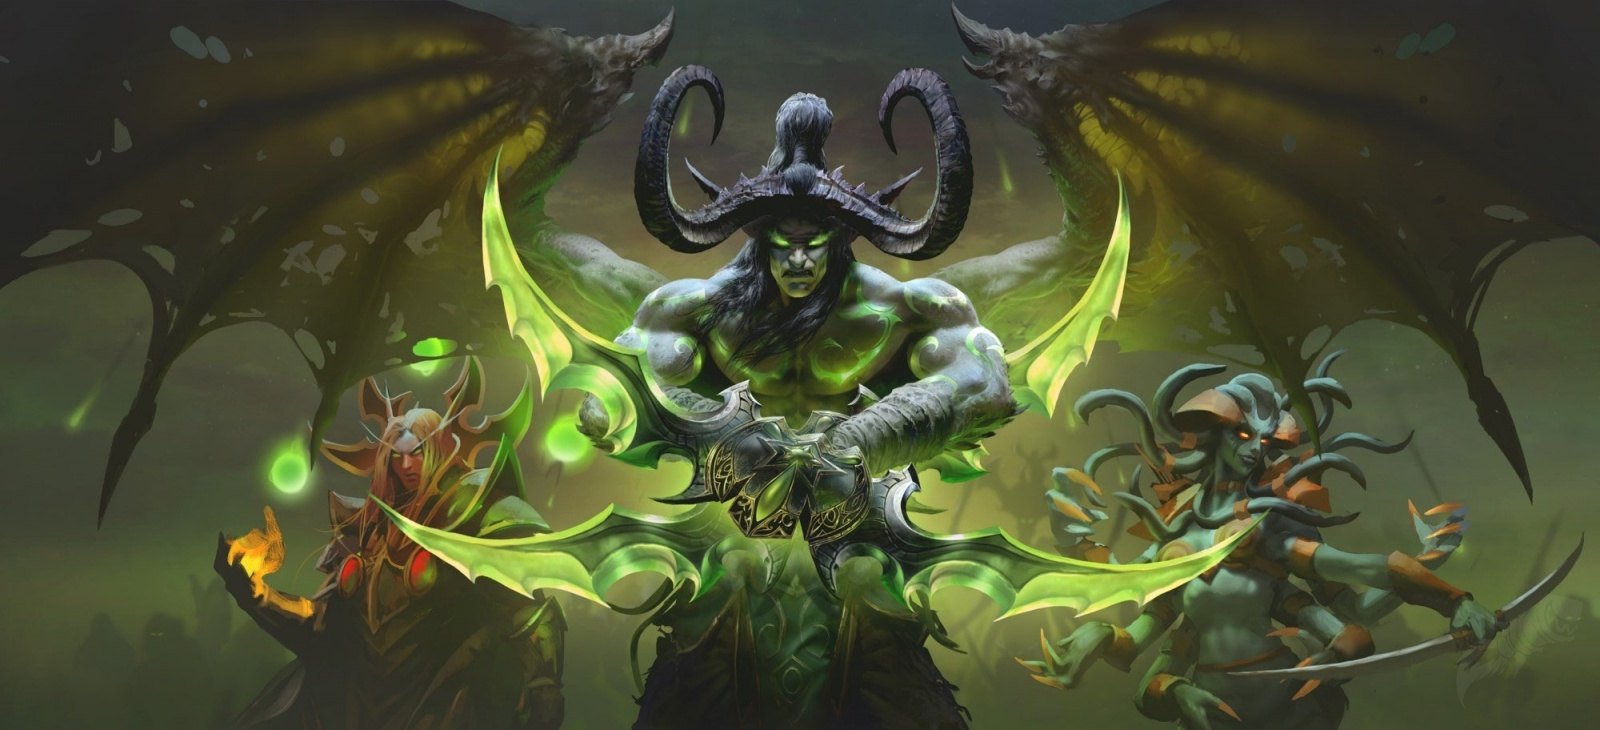 WoW: Burning Crusade Classic 'Accidentally' Confirmed by Blizzard